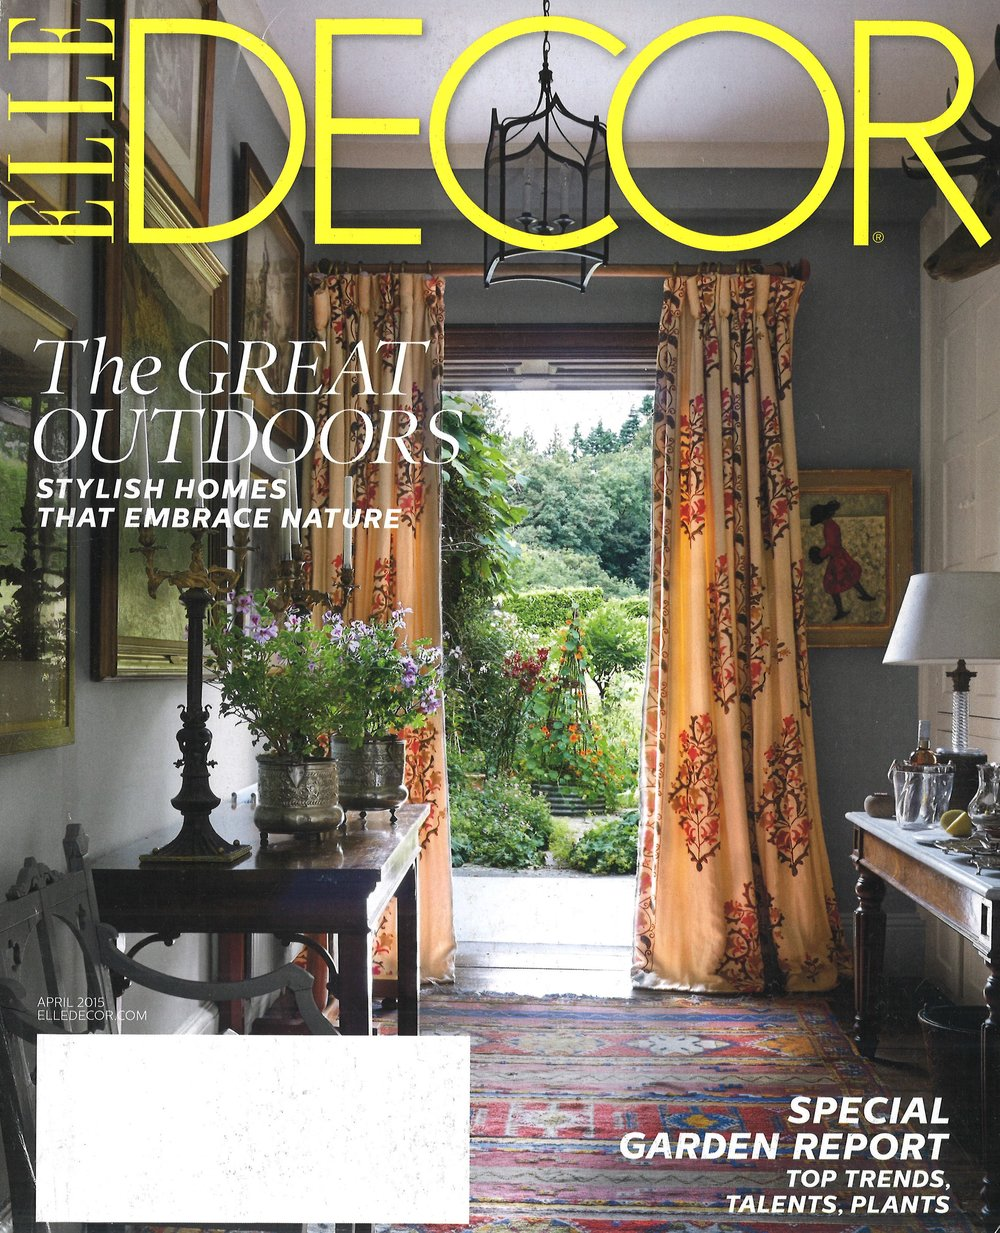 ED april2015 cover.jpg